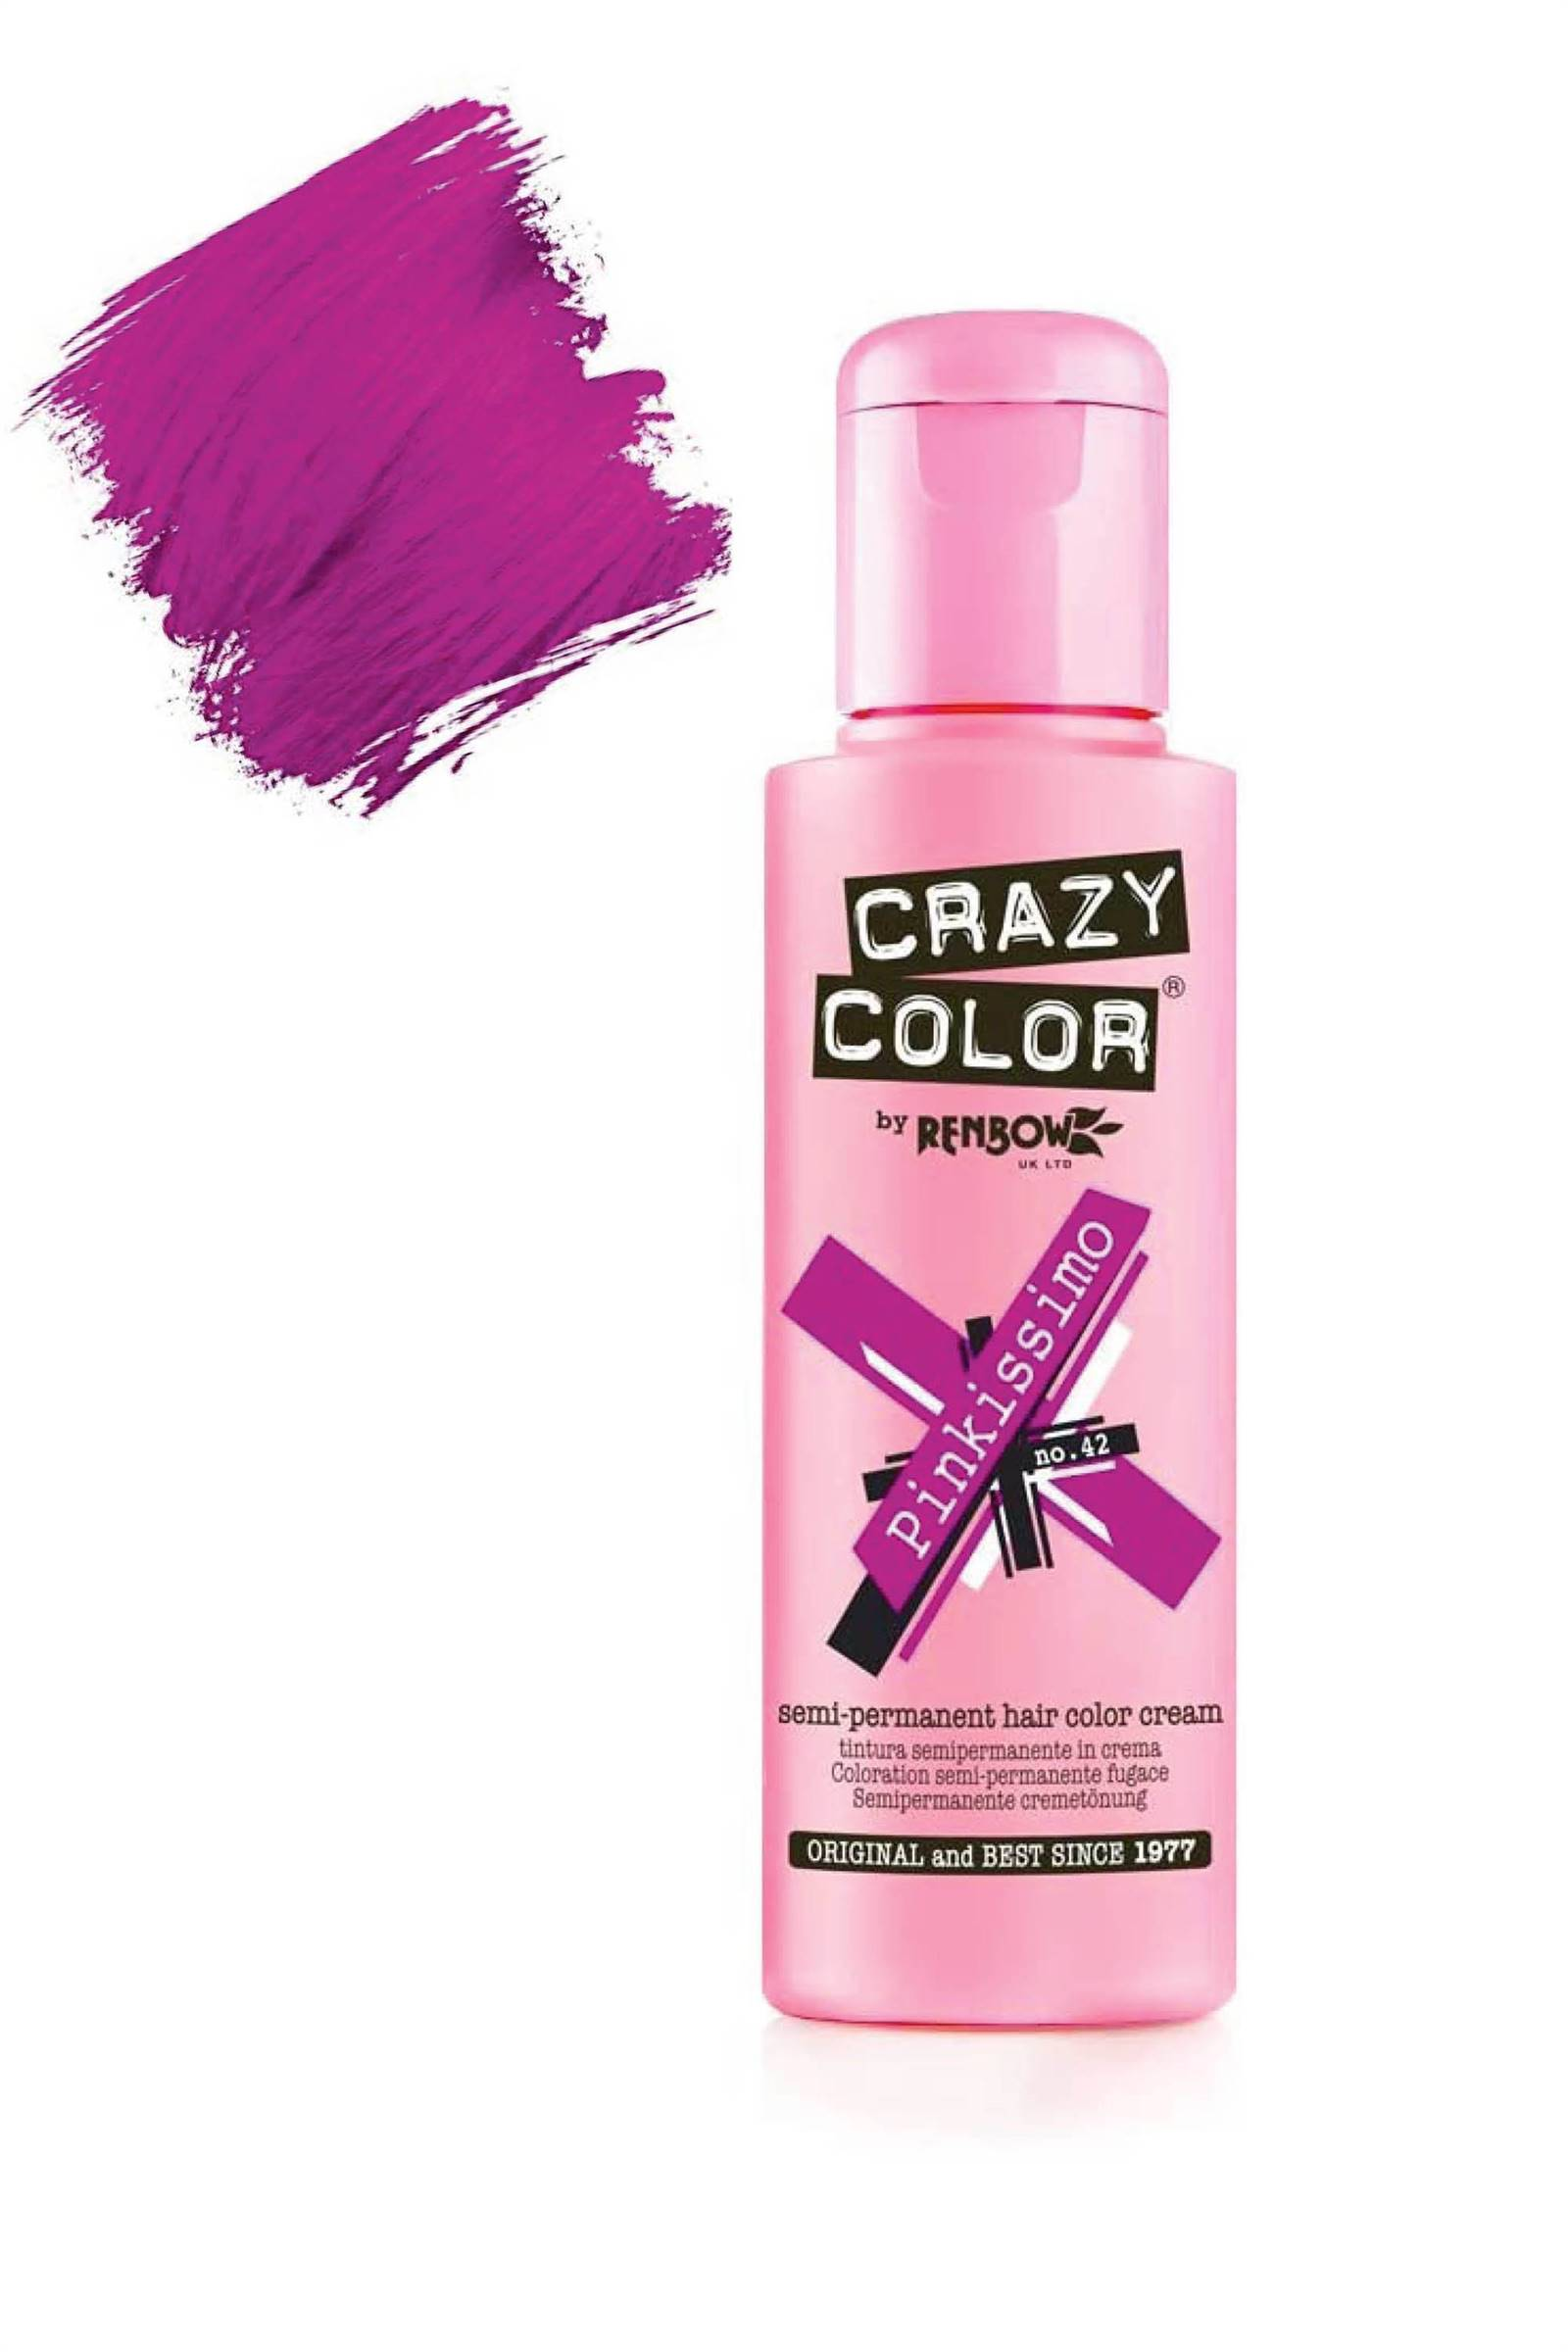 Pinkissimo de Crazy Color